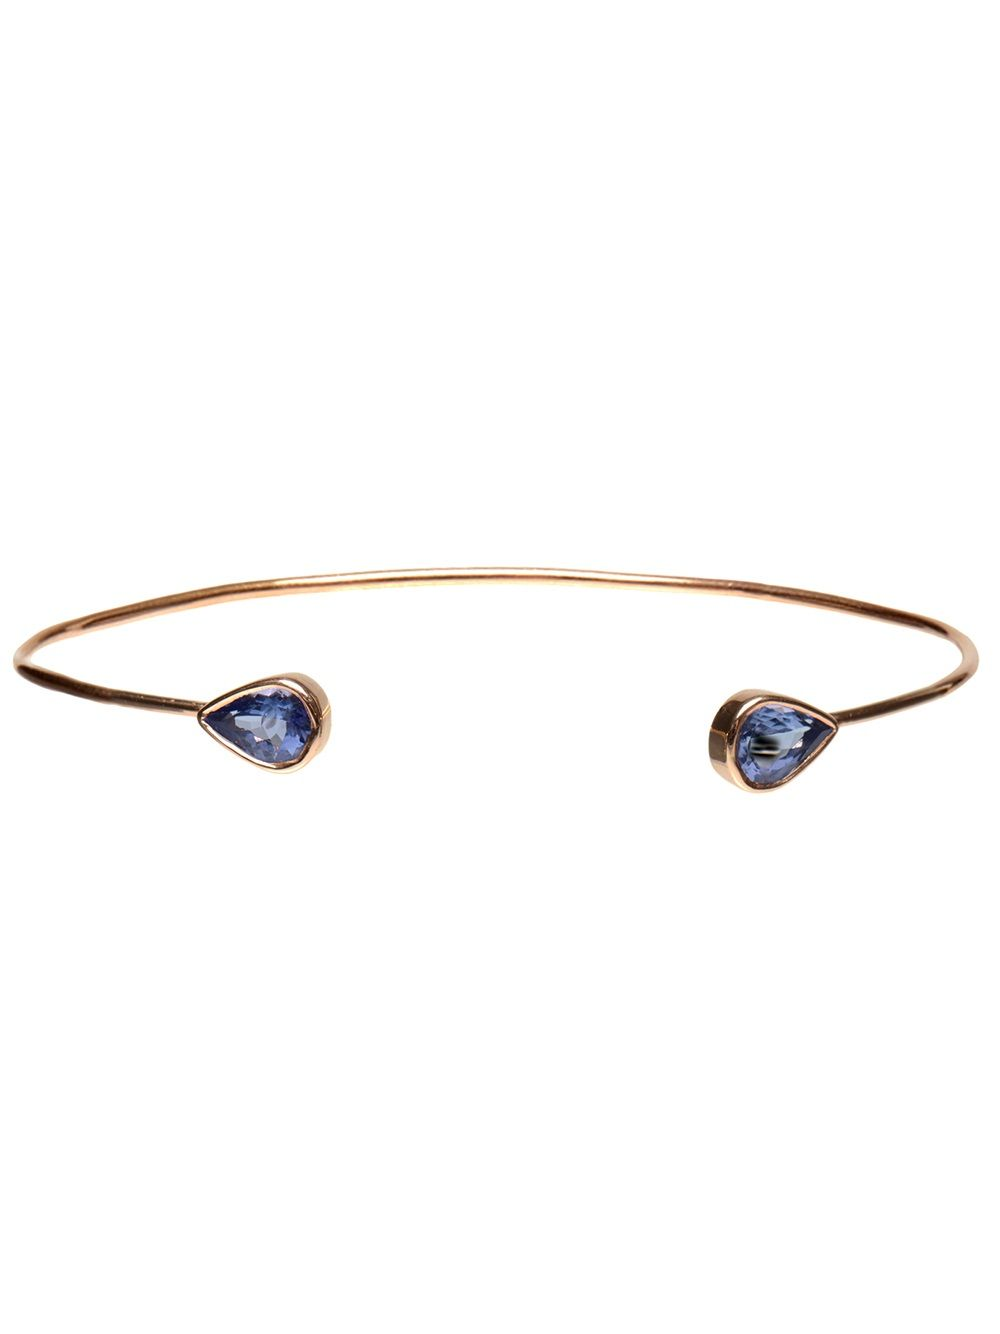 yvel shade y bracelet b dual gold peacock shop pkook tanzanite